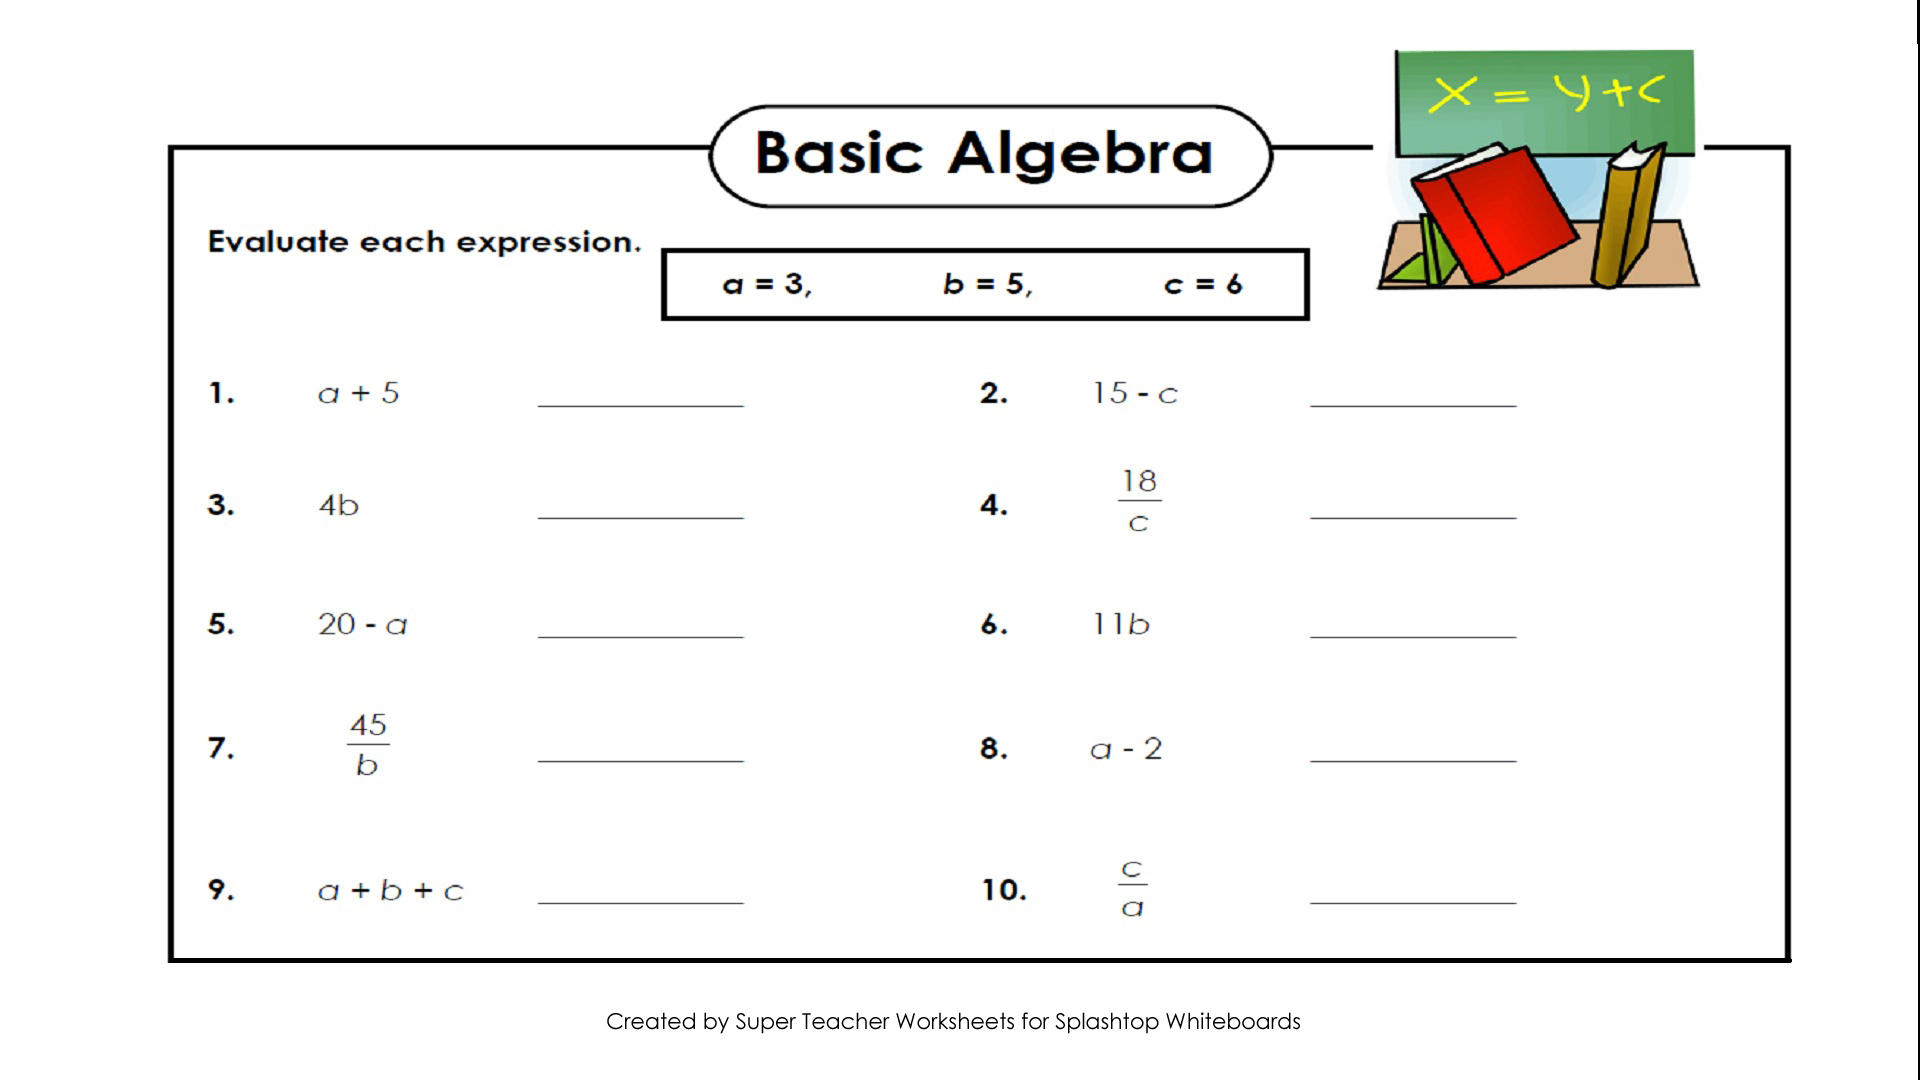 Worksheets Evaluating Expressions Worksheets splashtop whiteboard background graphics algebra basic evaluate each expression